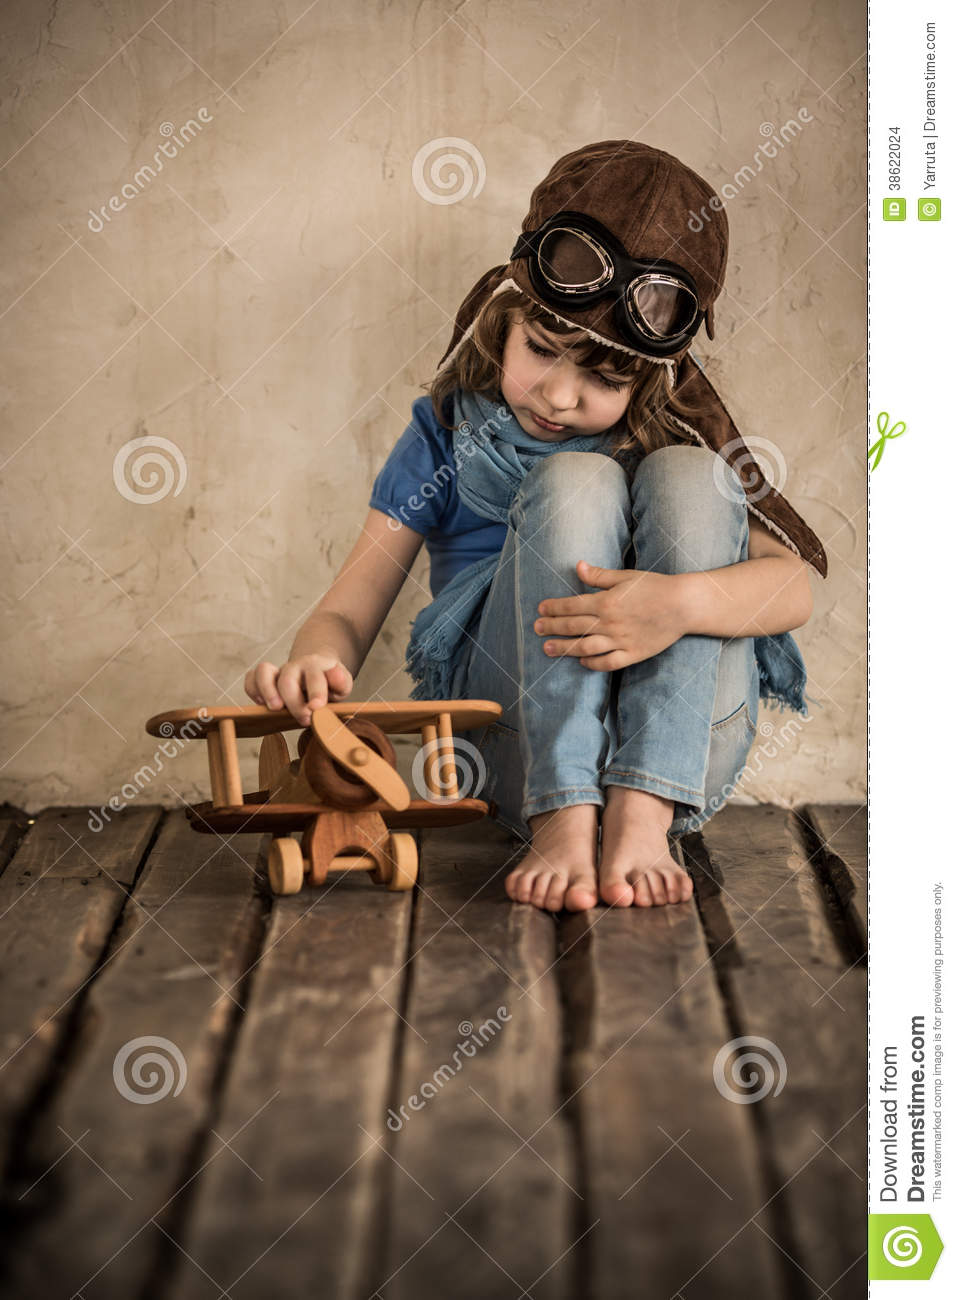 Sad Child Playing With Airplane Stock Images - Image: 38622024